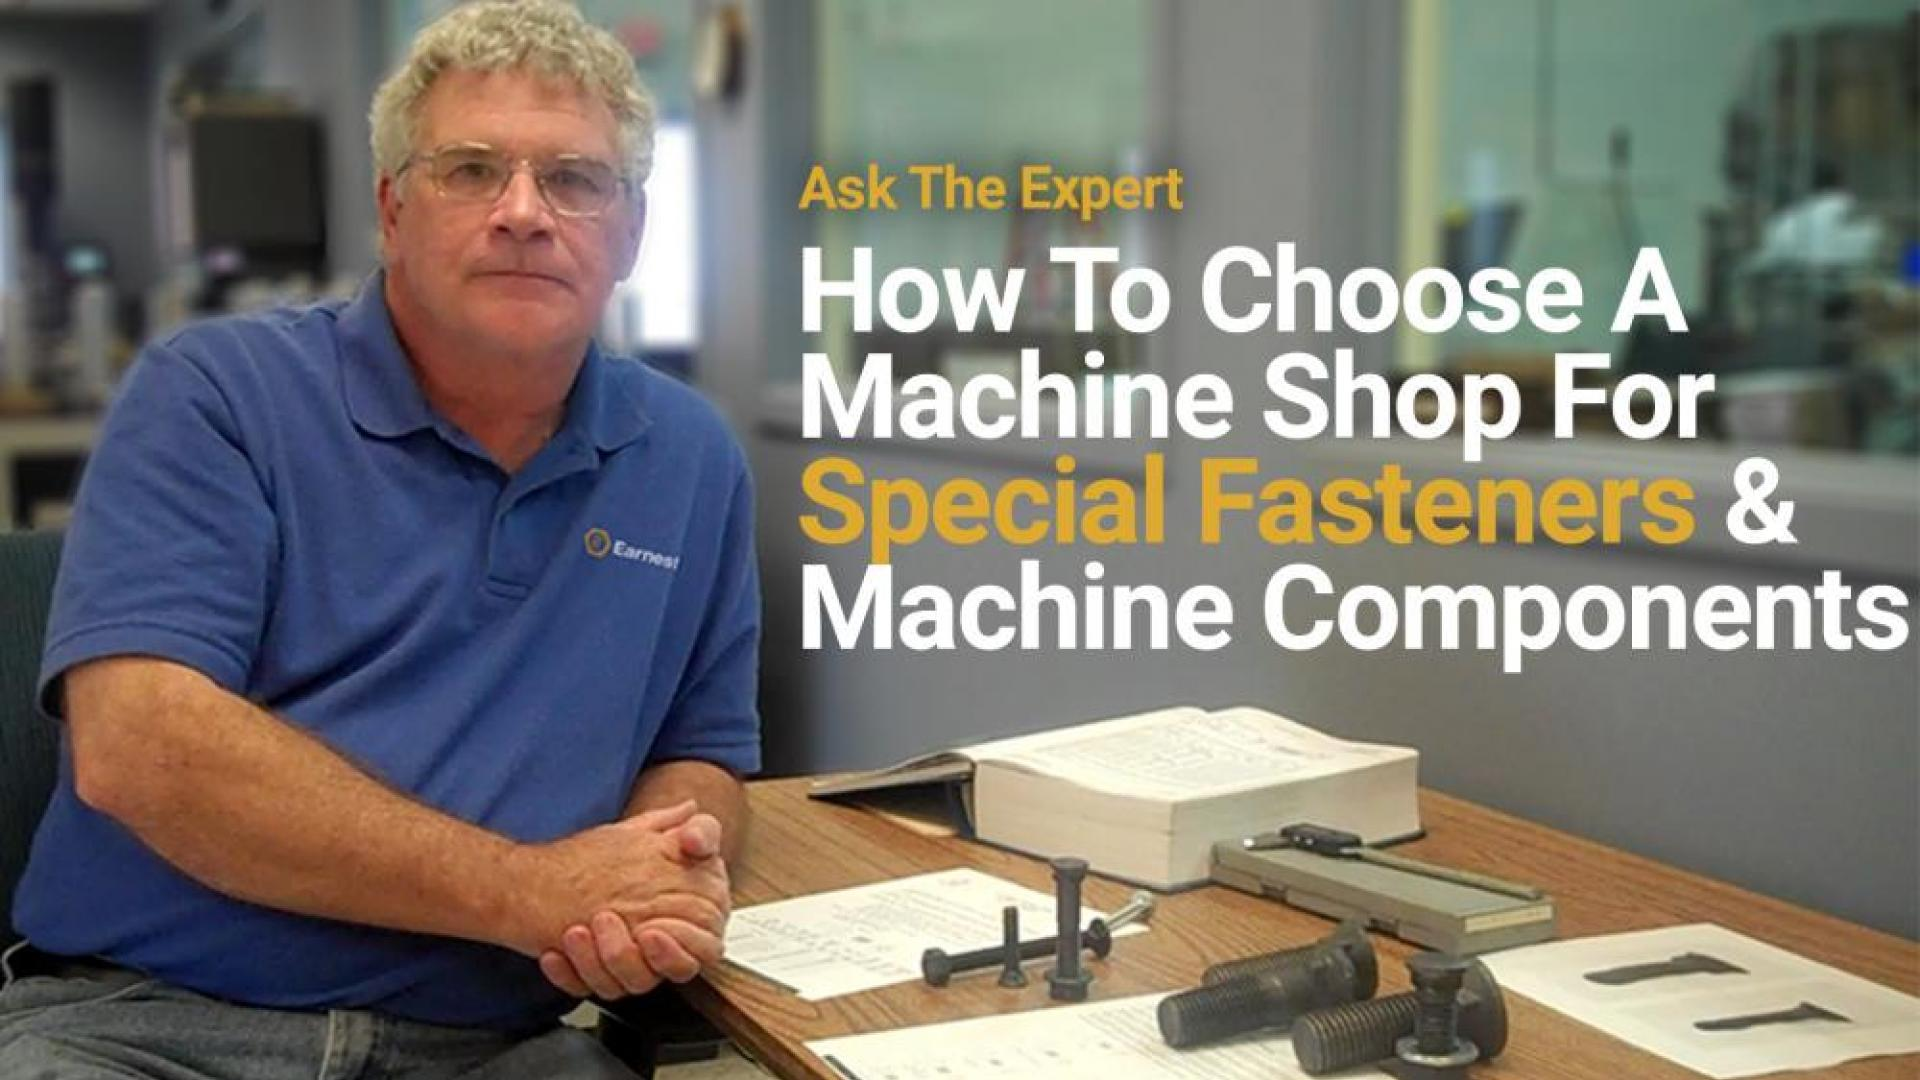 What To Look For In A Machine Shop